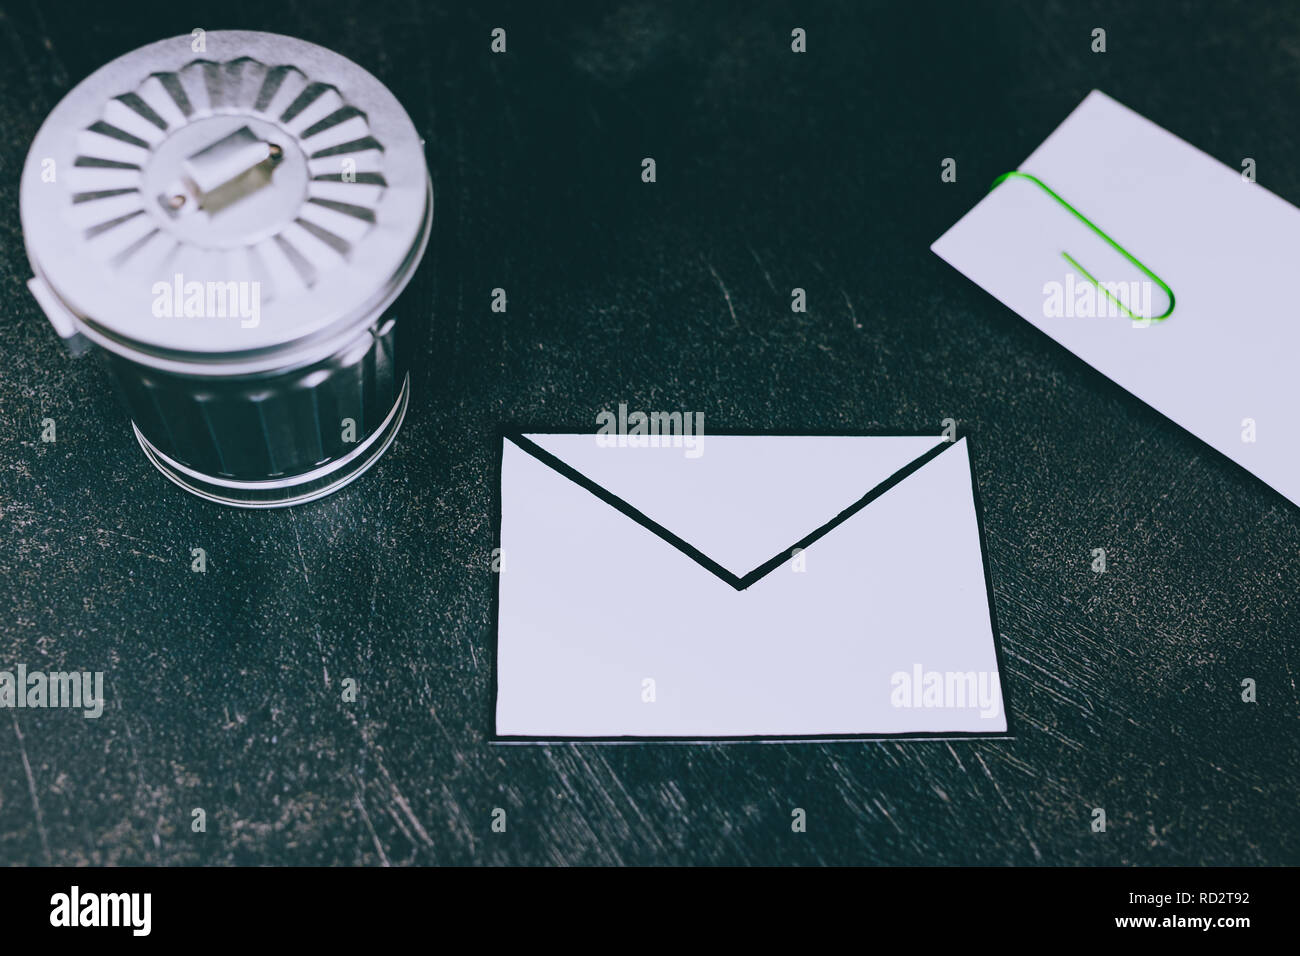 envelope with clip symbol of email and attachments with trash can next to it, concept of spam and unwanted emails - Stock Image